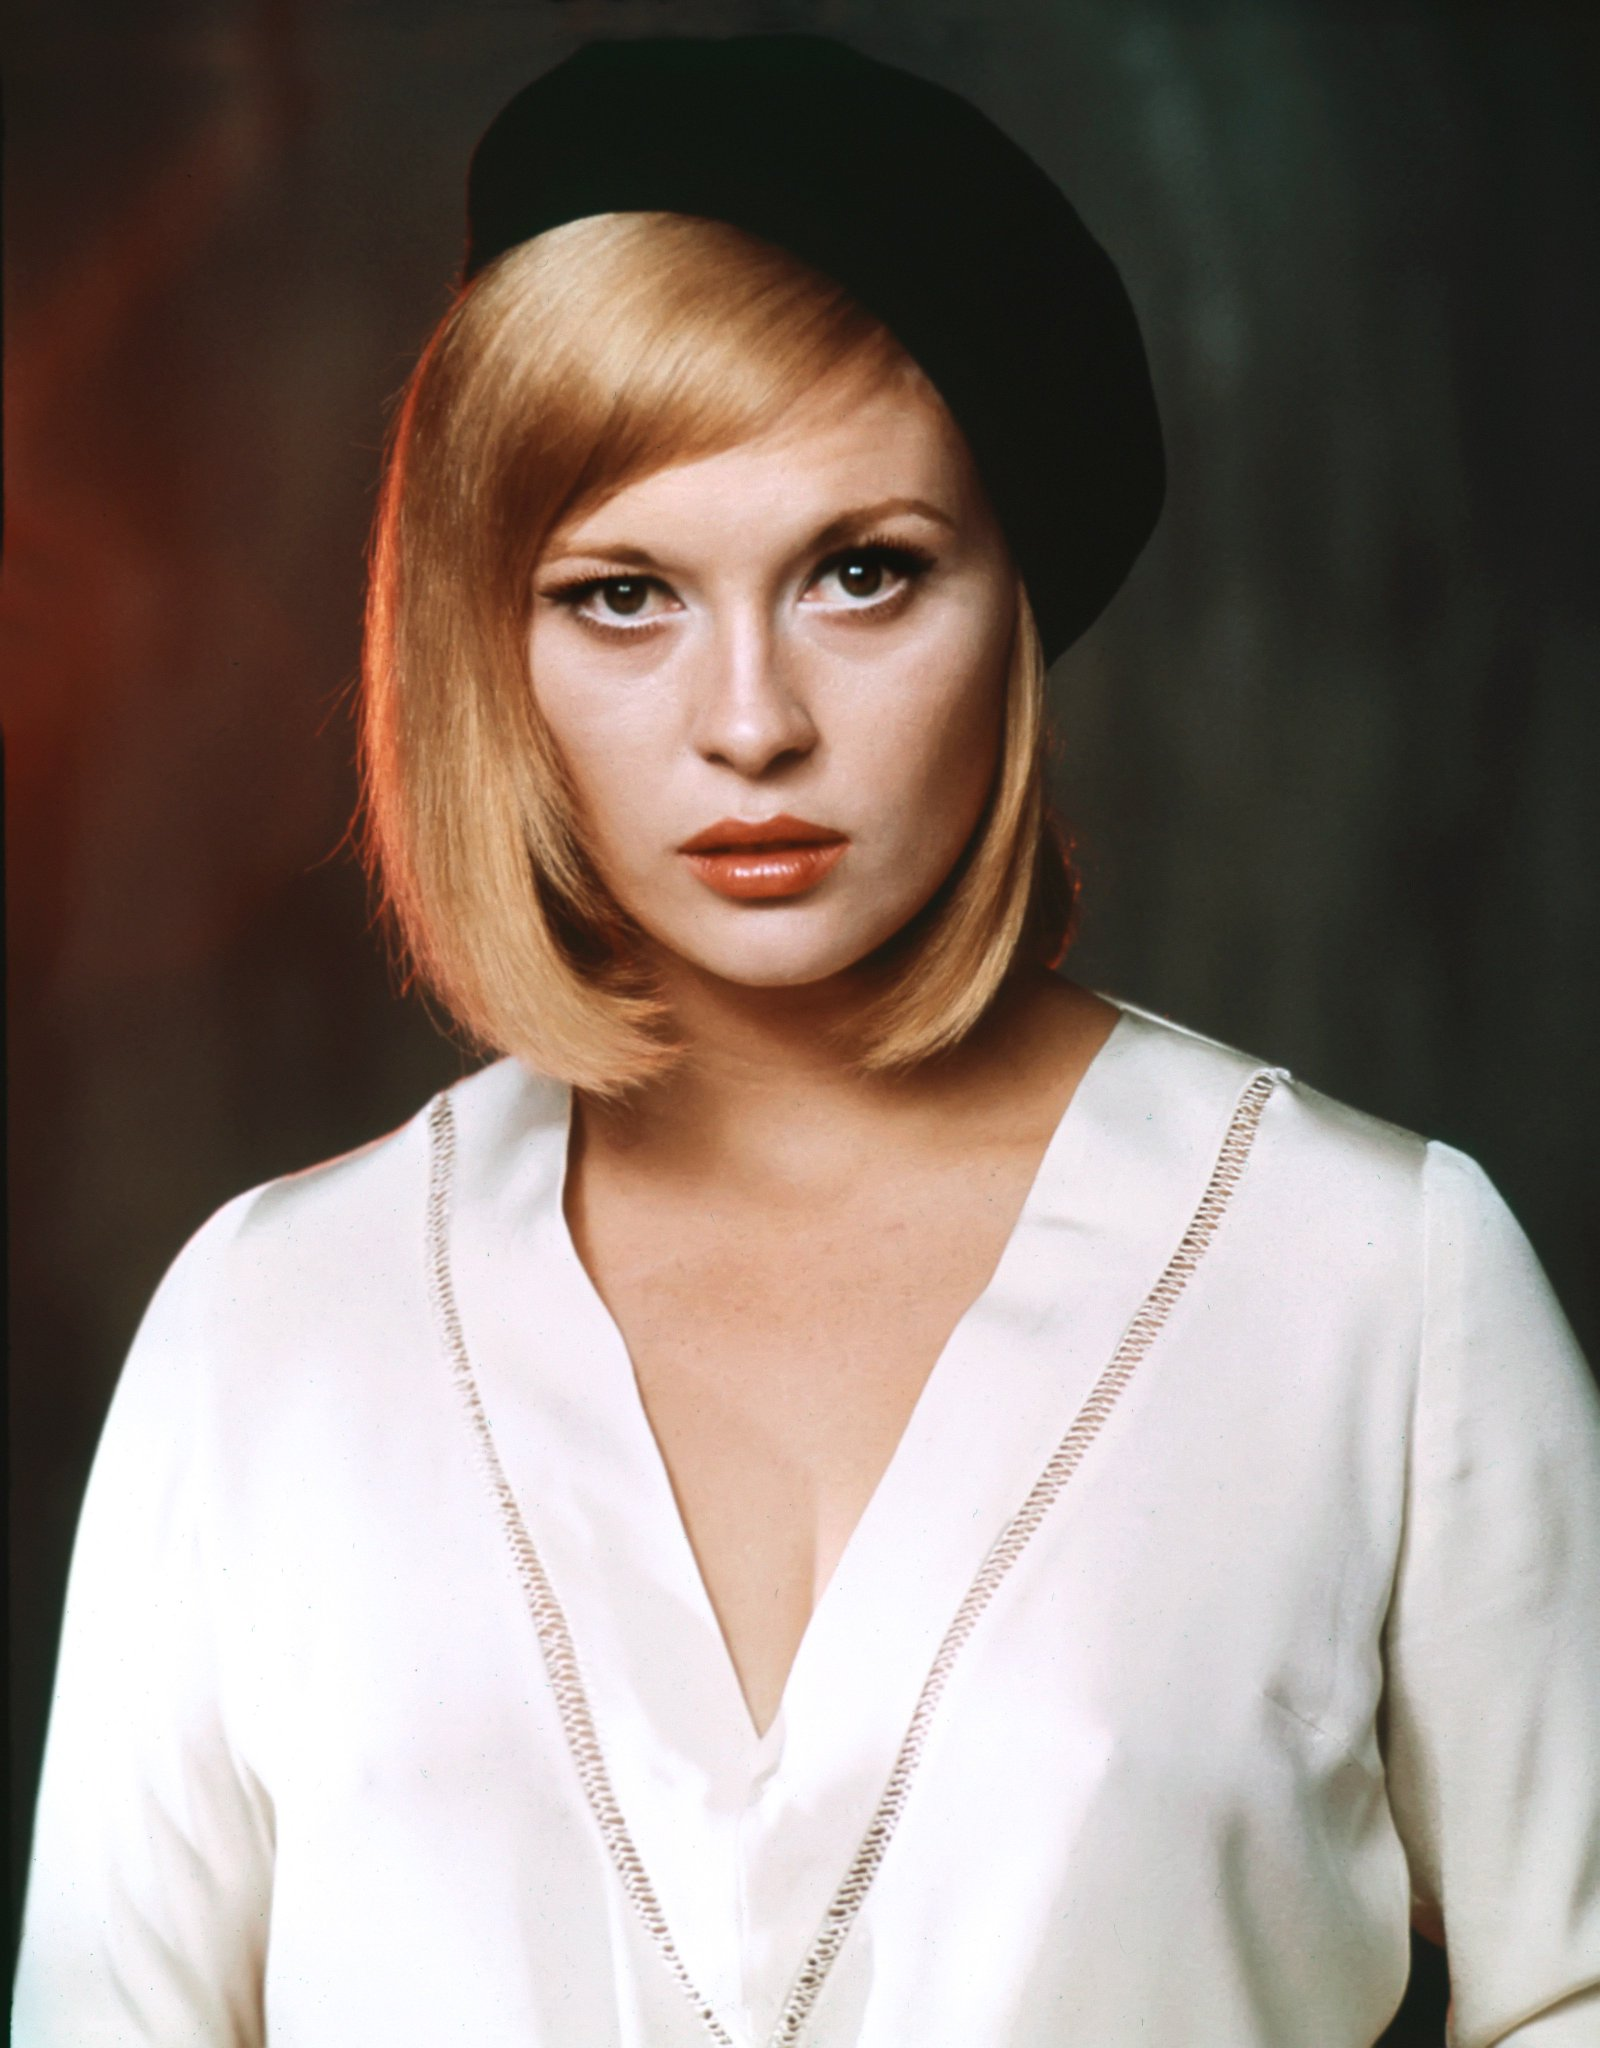 Happy Birthday, Faye Dunaway! Born 14 January 1941 in Bascom, Florida